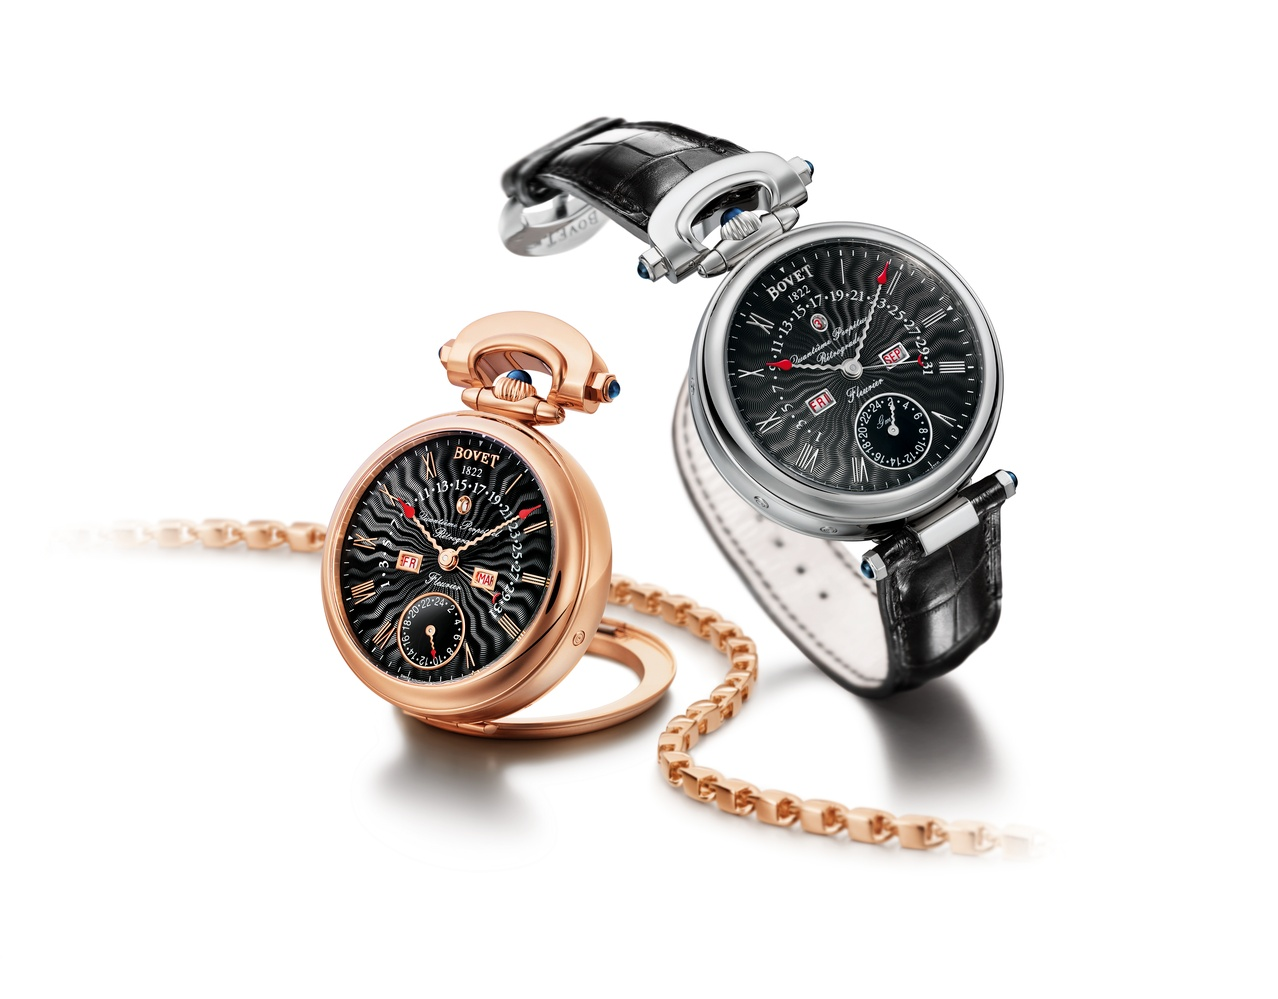 Bovet Watch   Amadeo Fleurier Complications   Ref. Nr. AGMT005/AGM    Call 312-944-3100  | For Availability